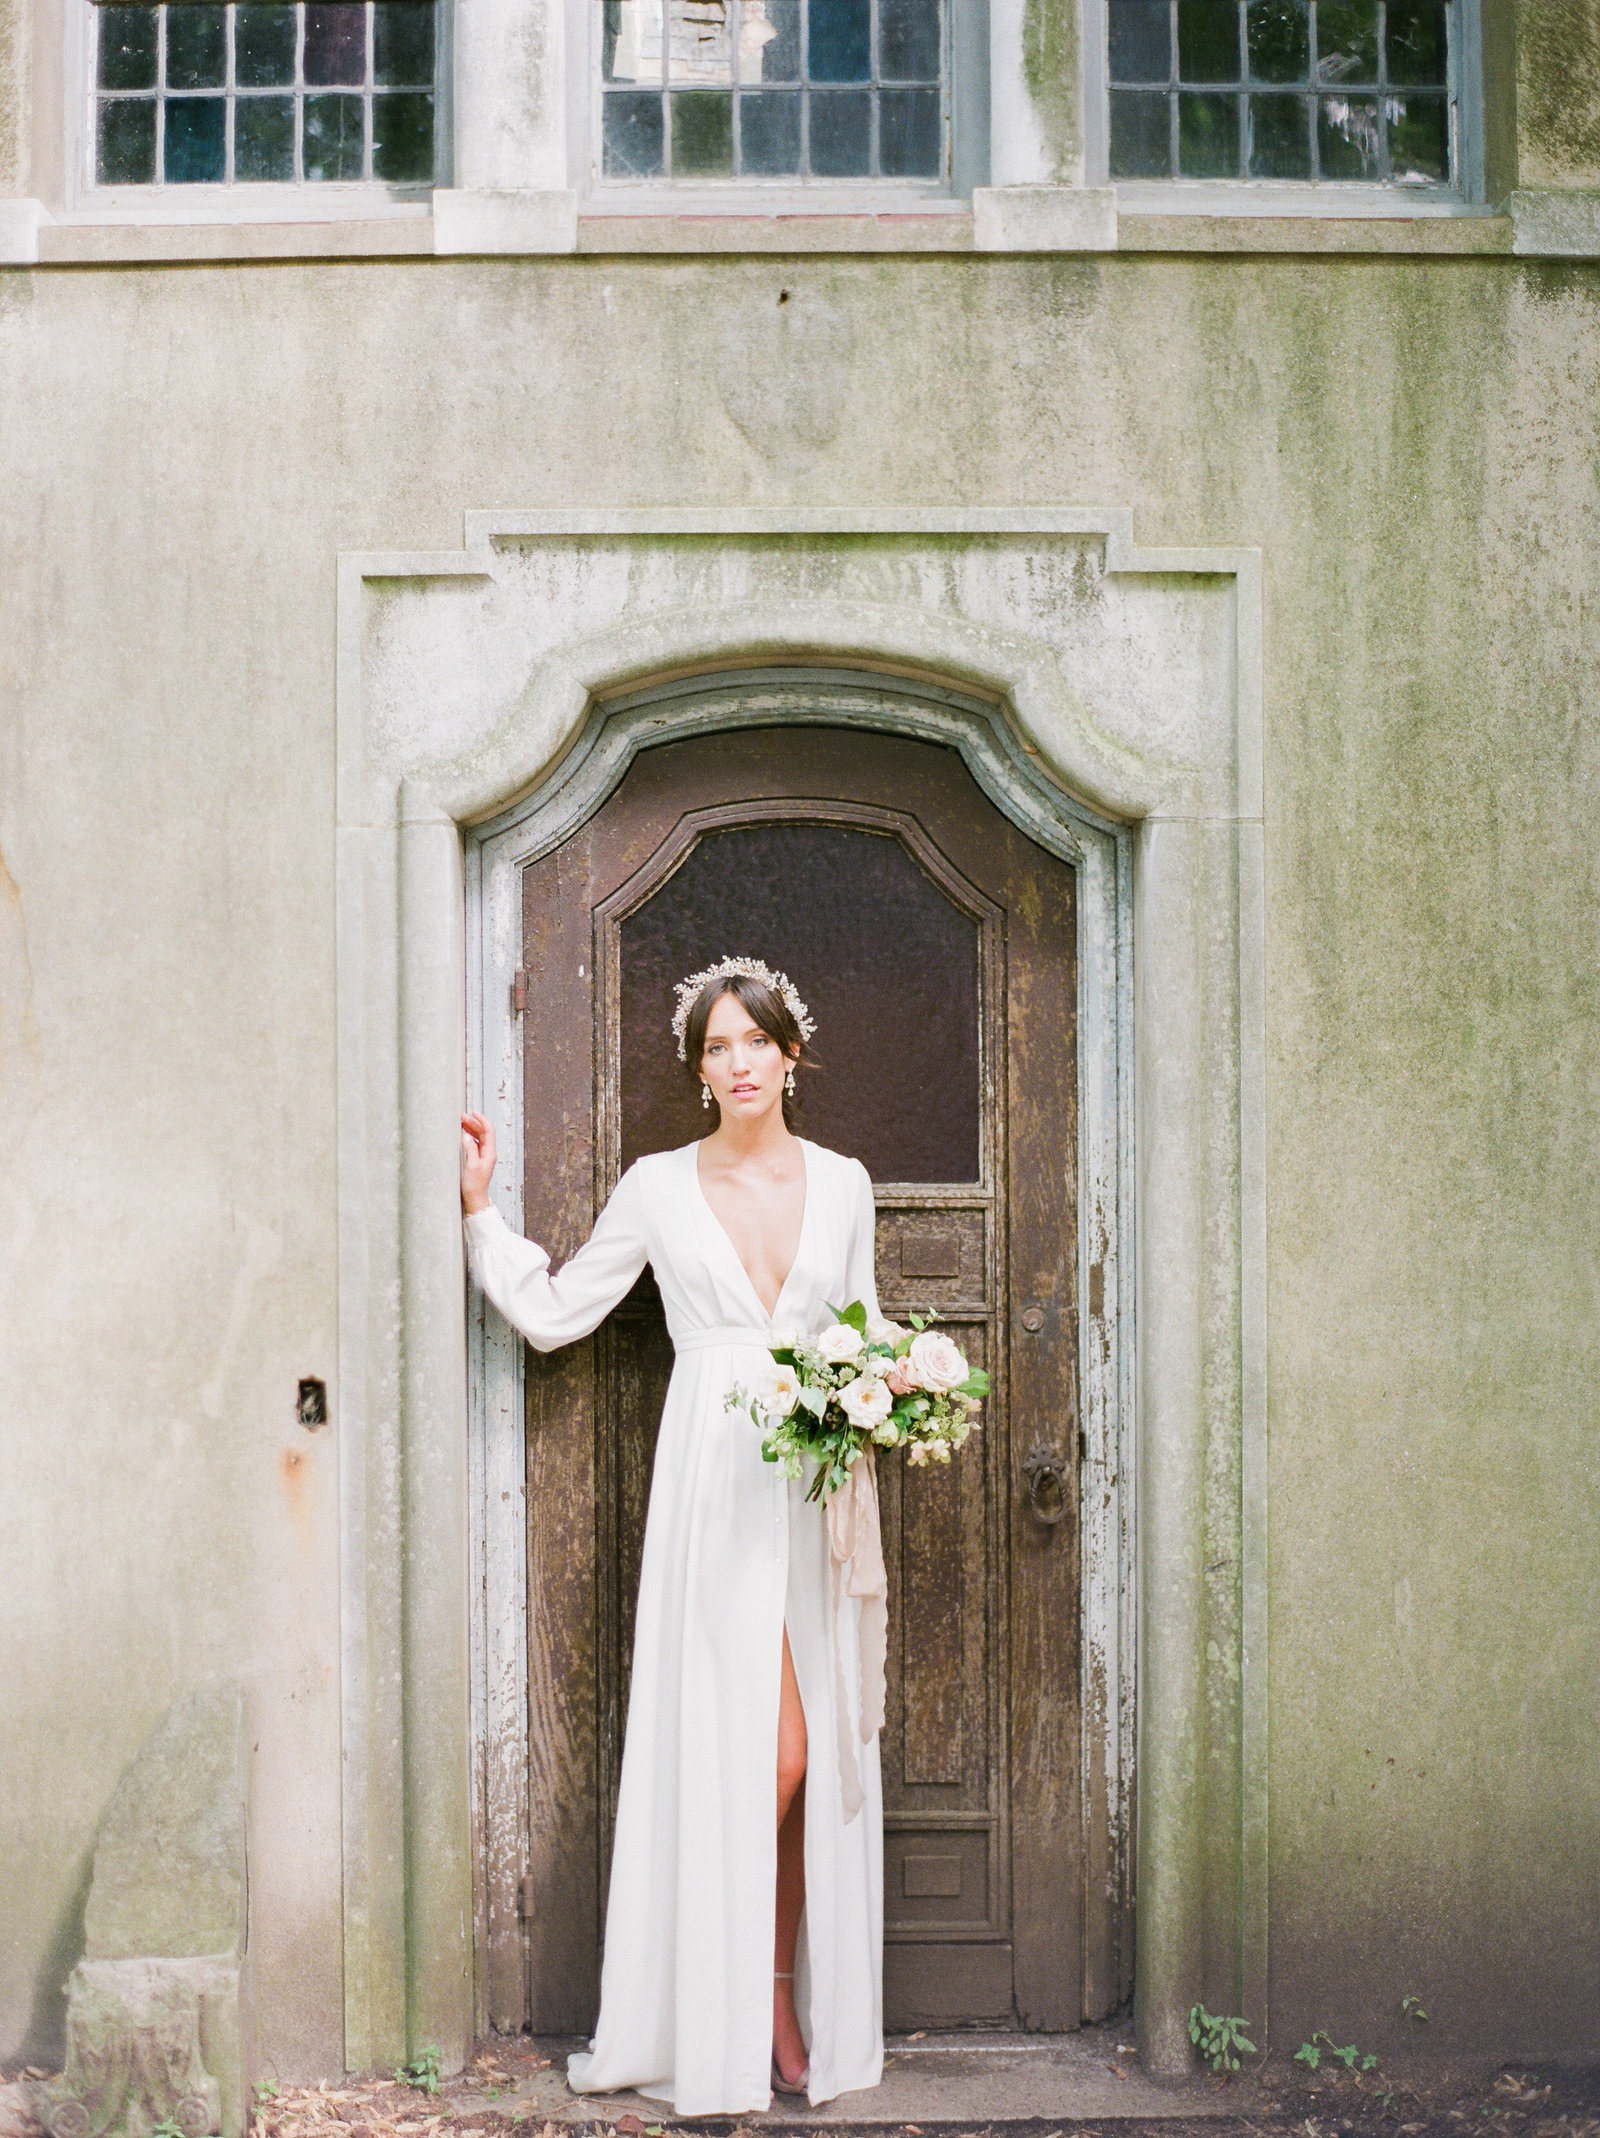 Christa O'Brien Photography Georgia Wedding photographer fine art film  alder manor destination wedding